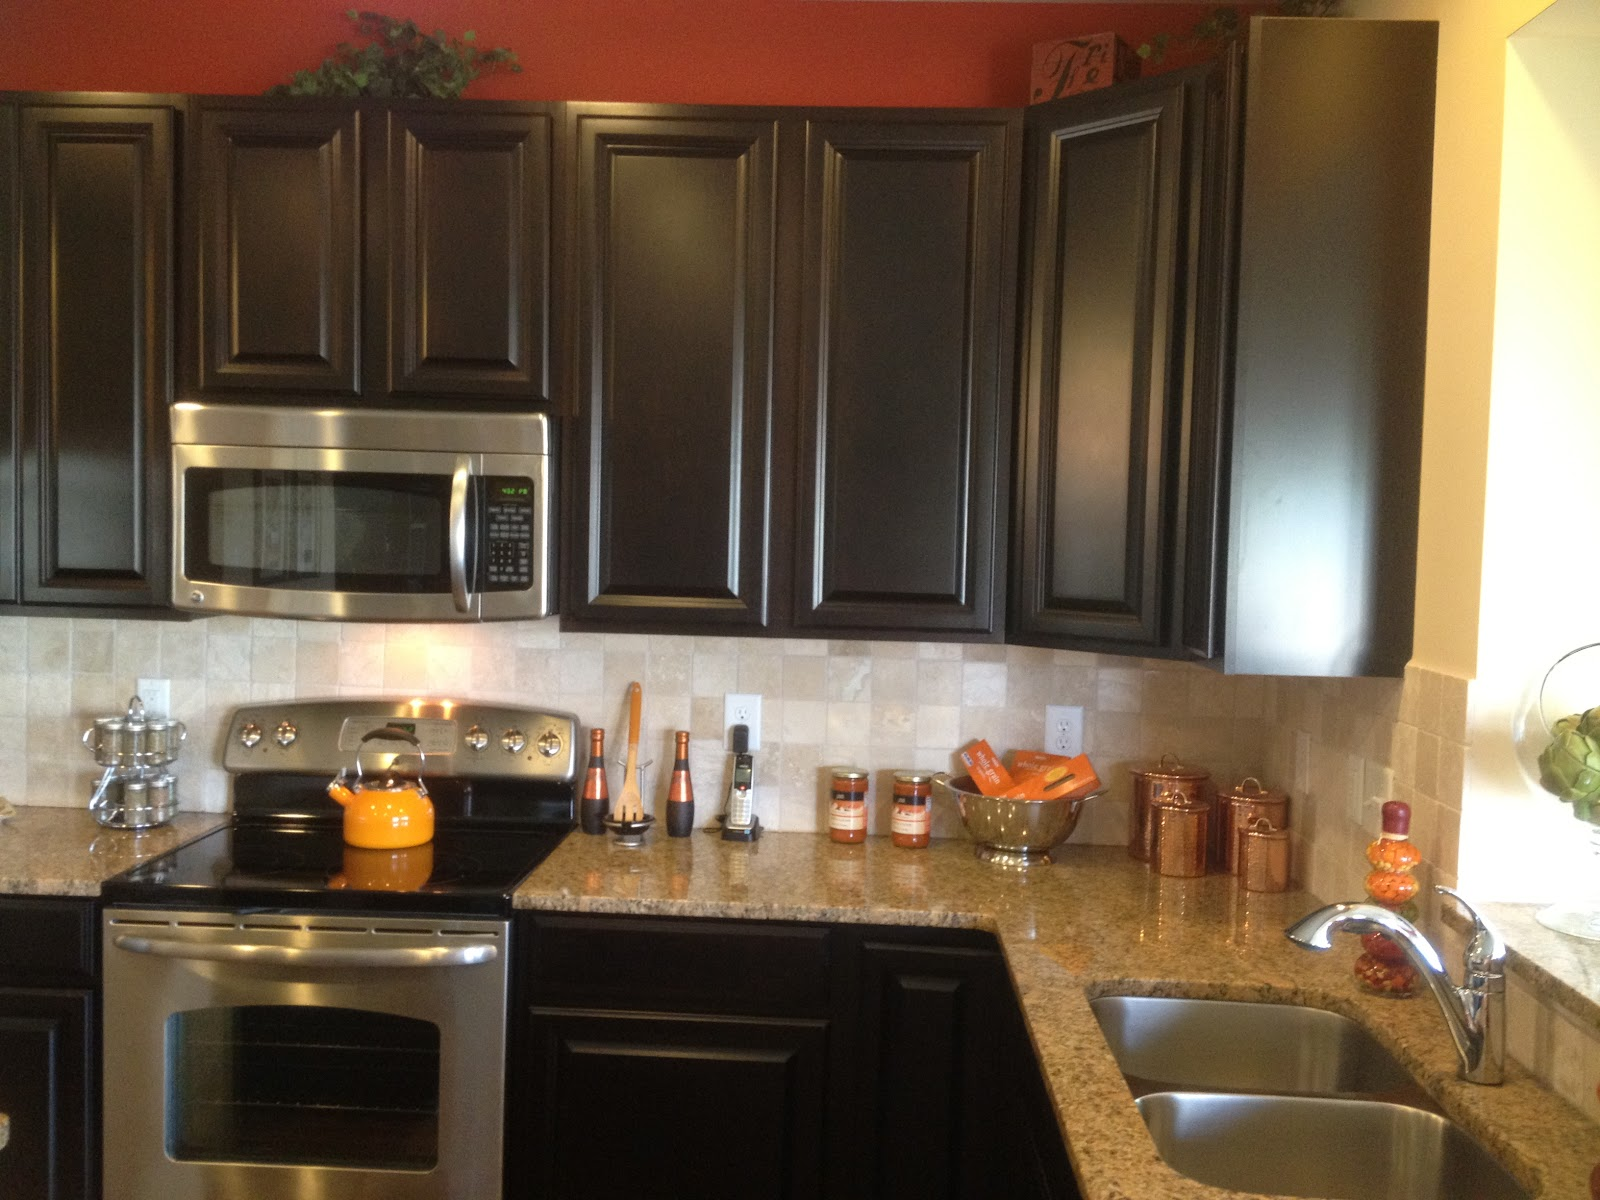 Kitchen Backsplash with Espresso CabiWhite